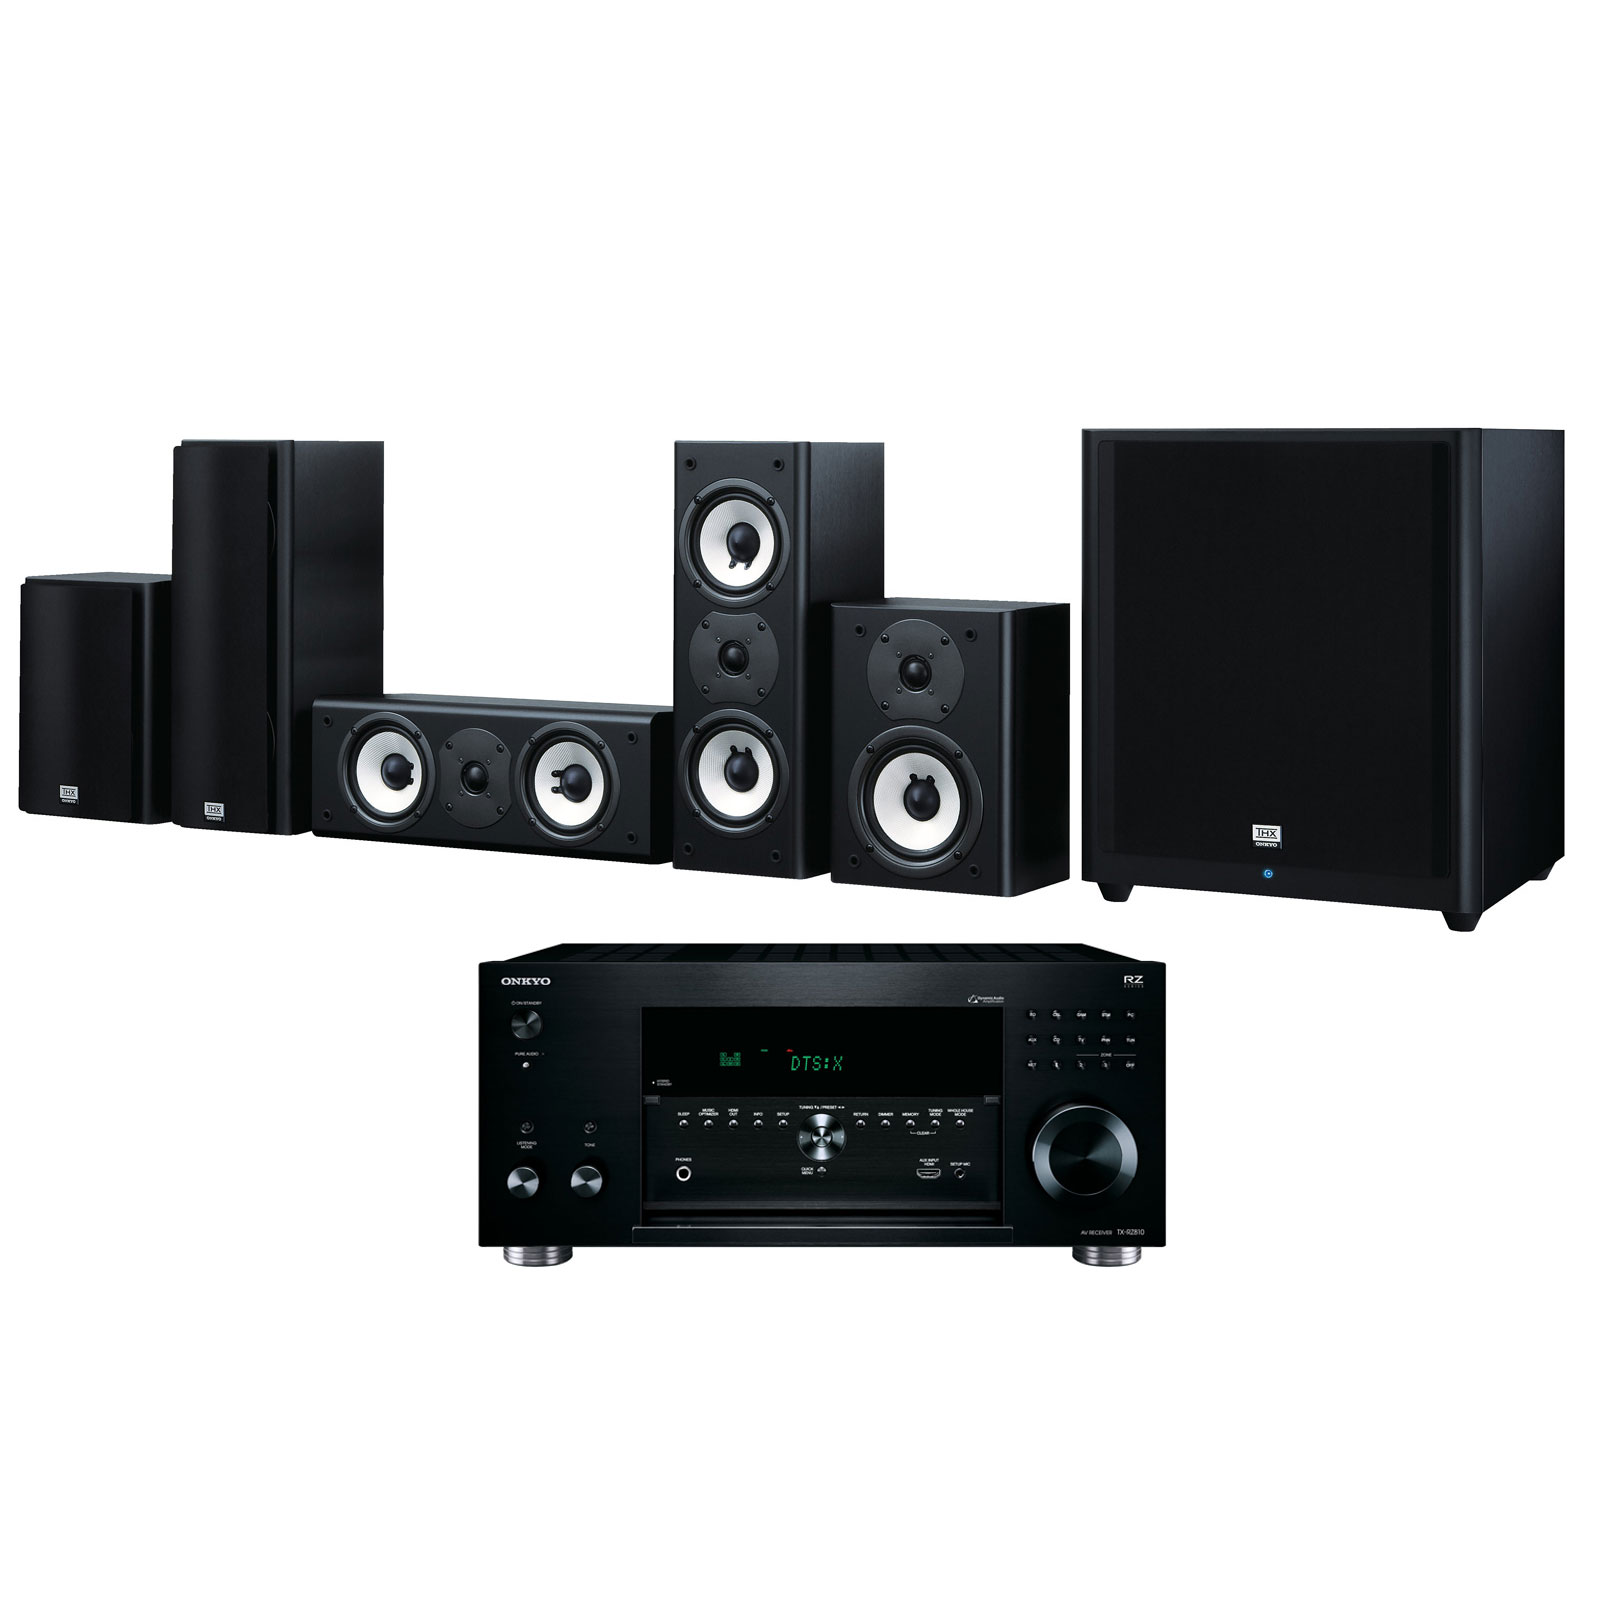 Ensemble home cinéma Onkyo TX-RZ810 Noir + SKS-HT978THX Ampli-tuner Home Cinéma 7.2 - THX - Bluetooth - AirPlay - Wi-Fi - Dolby Atmos - DTS:X - 4K - HDCP 2.2 - HDR - Hi-Res Audio - 8 entrées HDMI + Pack d'enceintes 5.1 certification THX